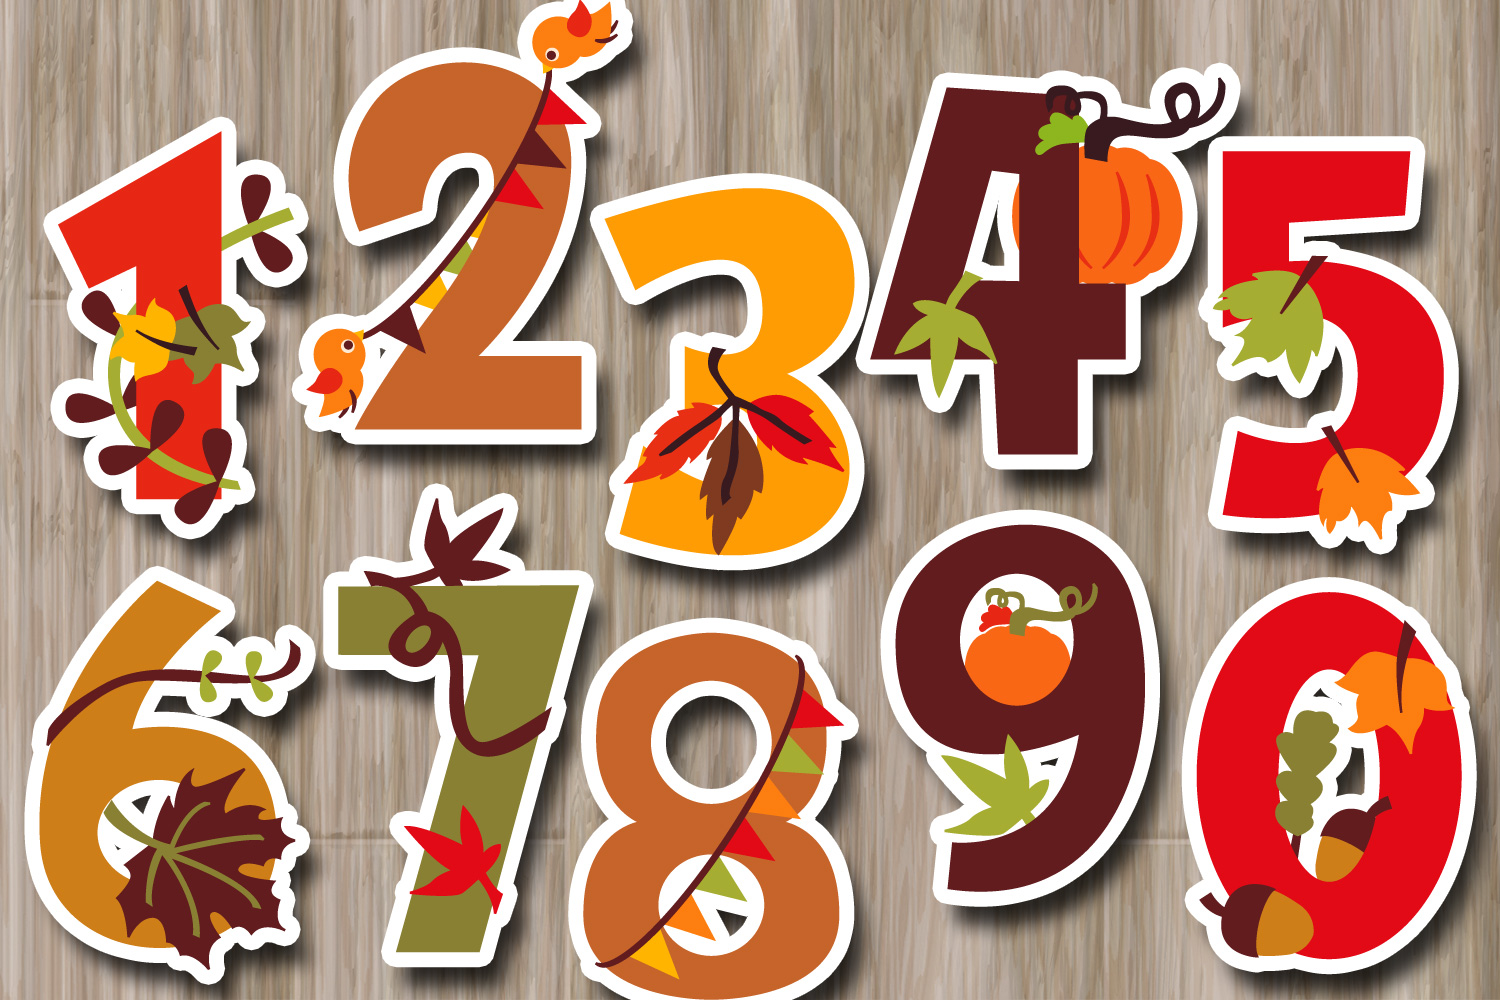 Autumn numbers clipart, fall season graphic illustrations example image 2